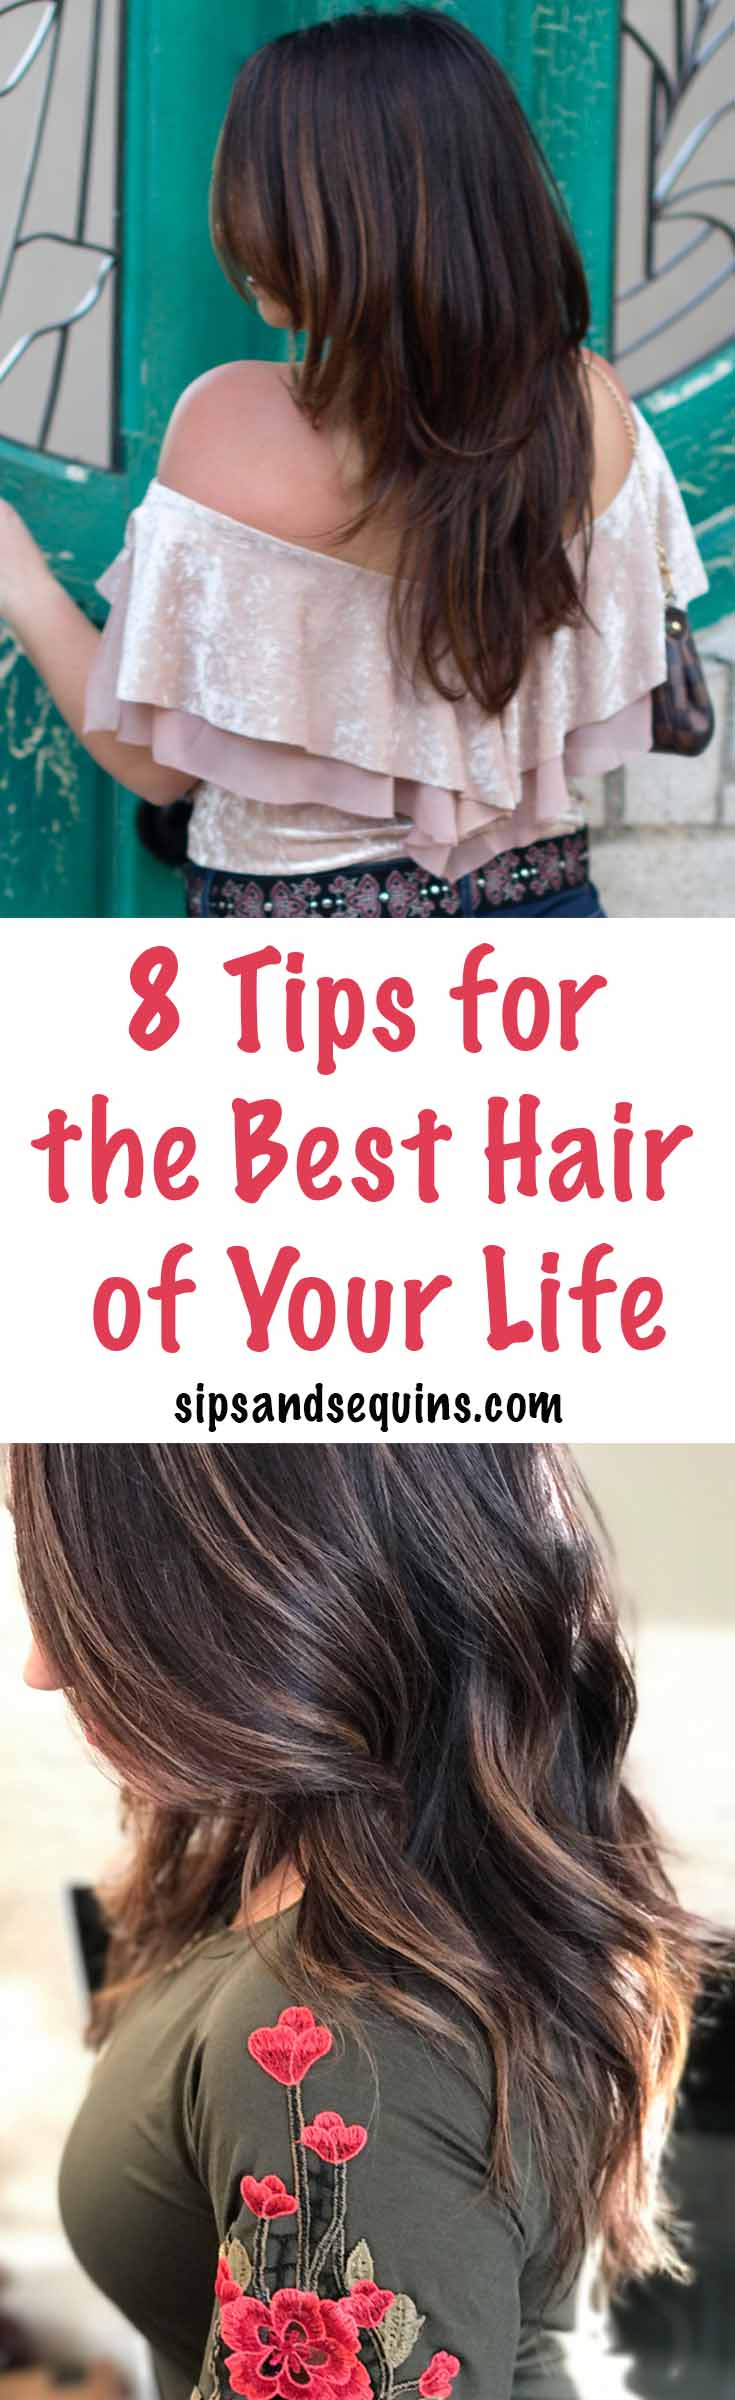 8 Tips for Best Hair Pin.jpg